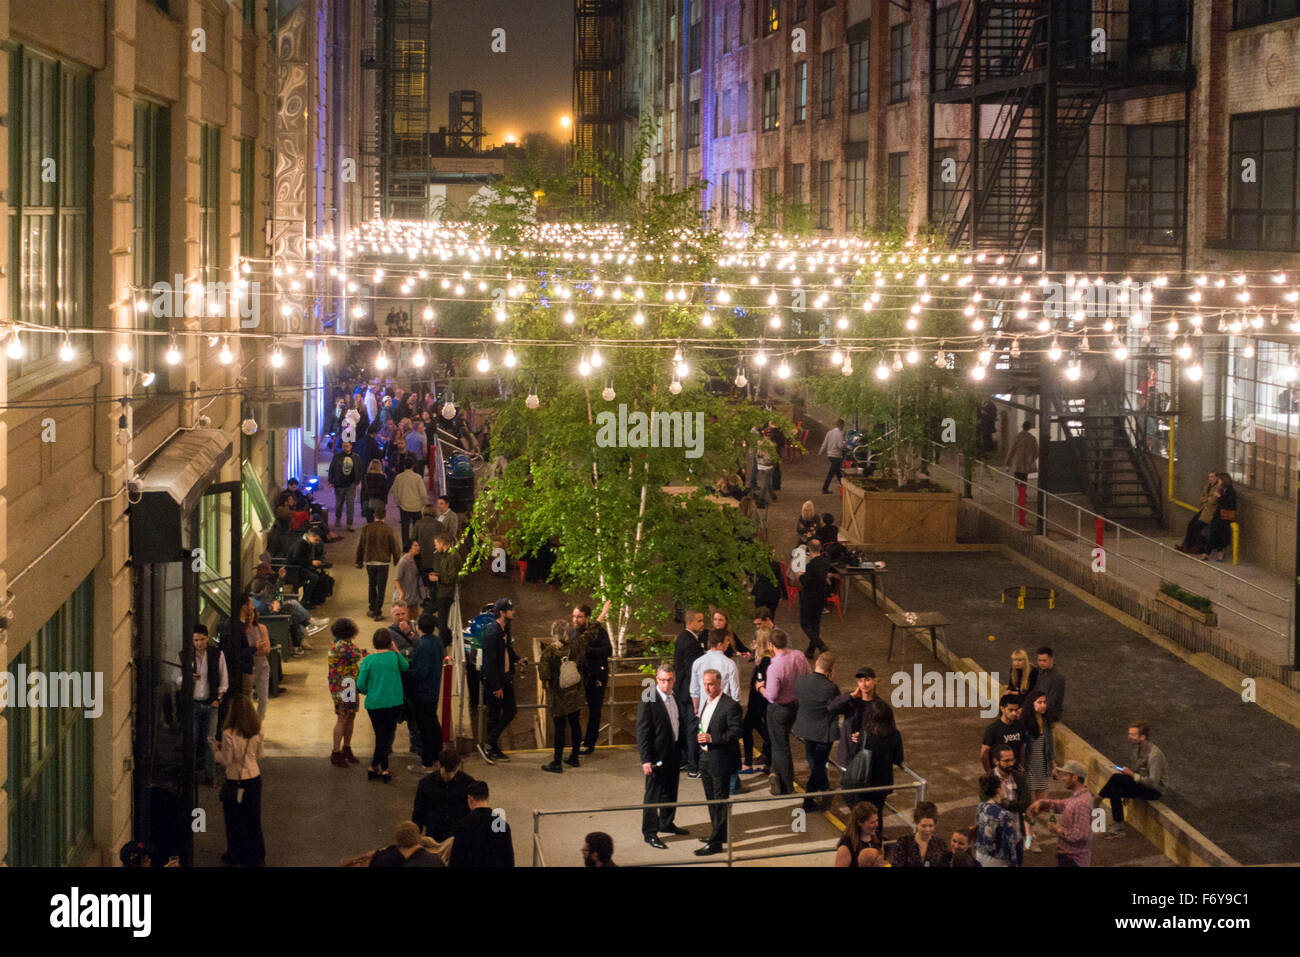 Industry city event Sunset park Brooklyn NYC Stock Photo